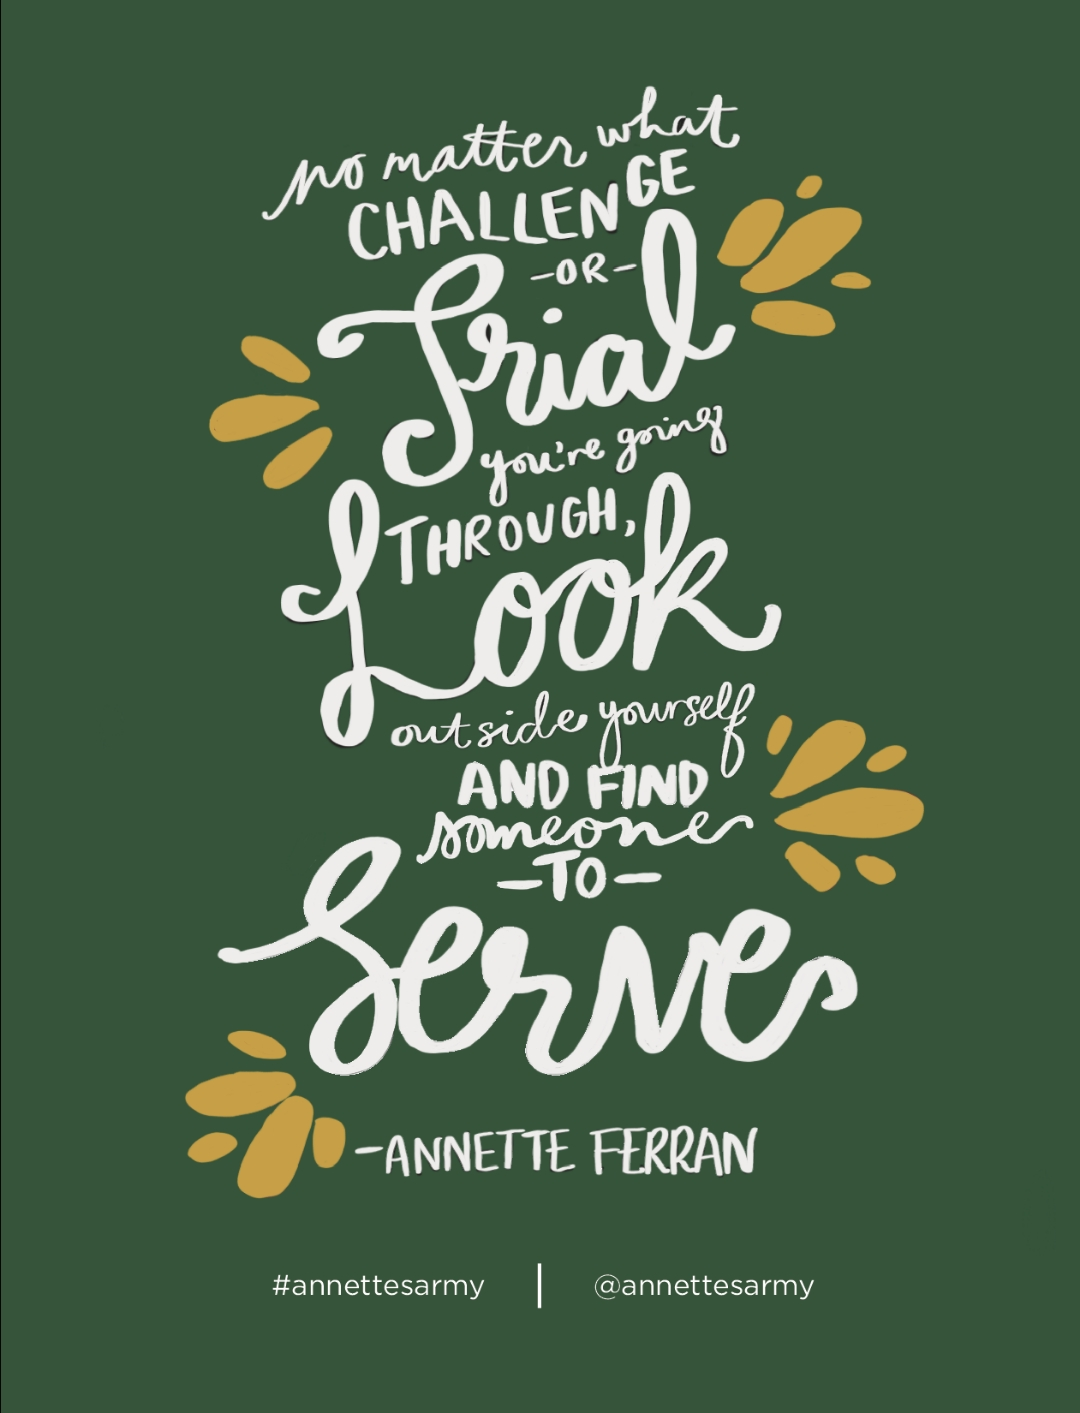 A photo quote from Annette Ferran which was put together for their 12 months of service projects by their collaborator Piper and Scoot in Draper, Utah.